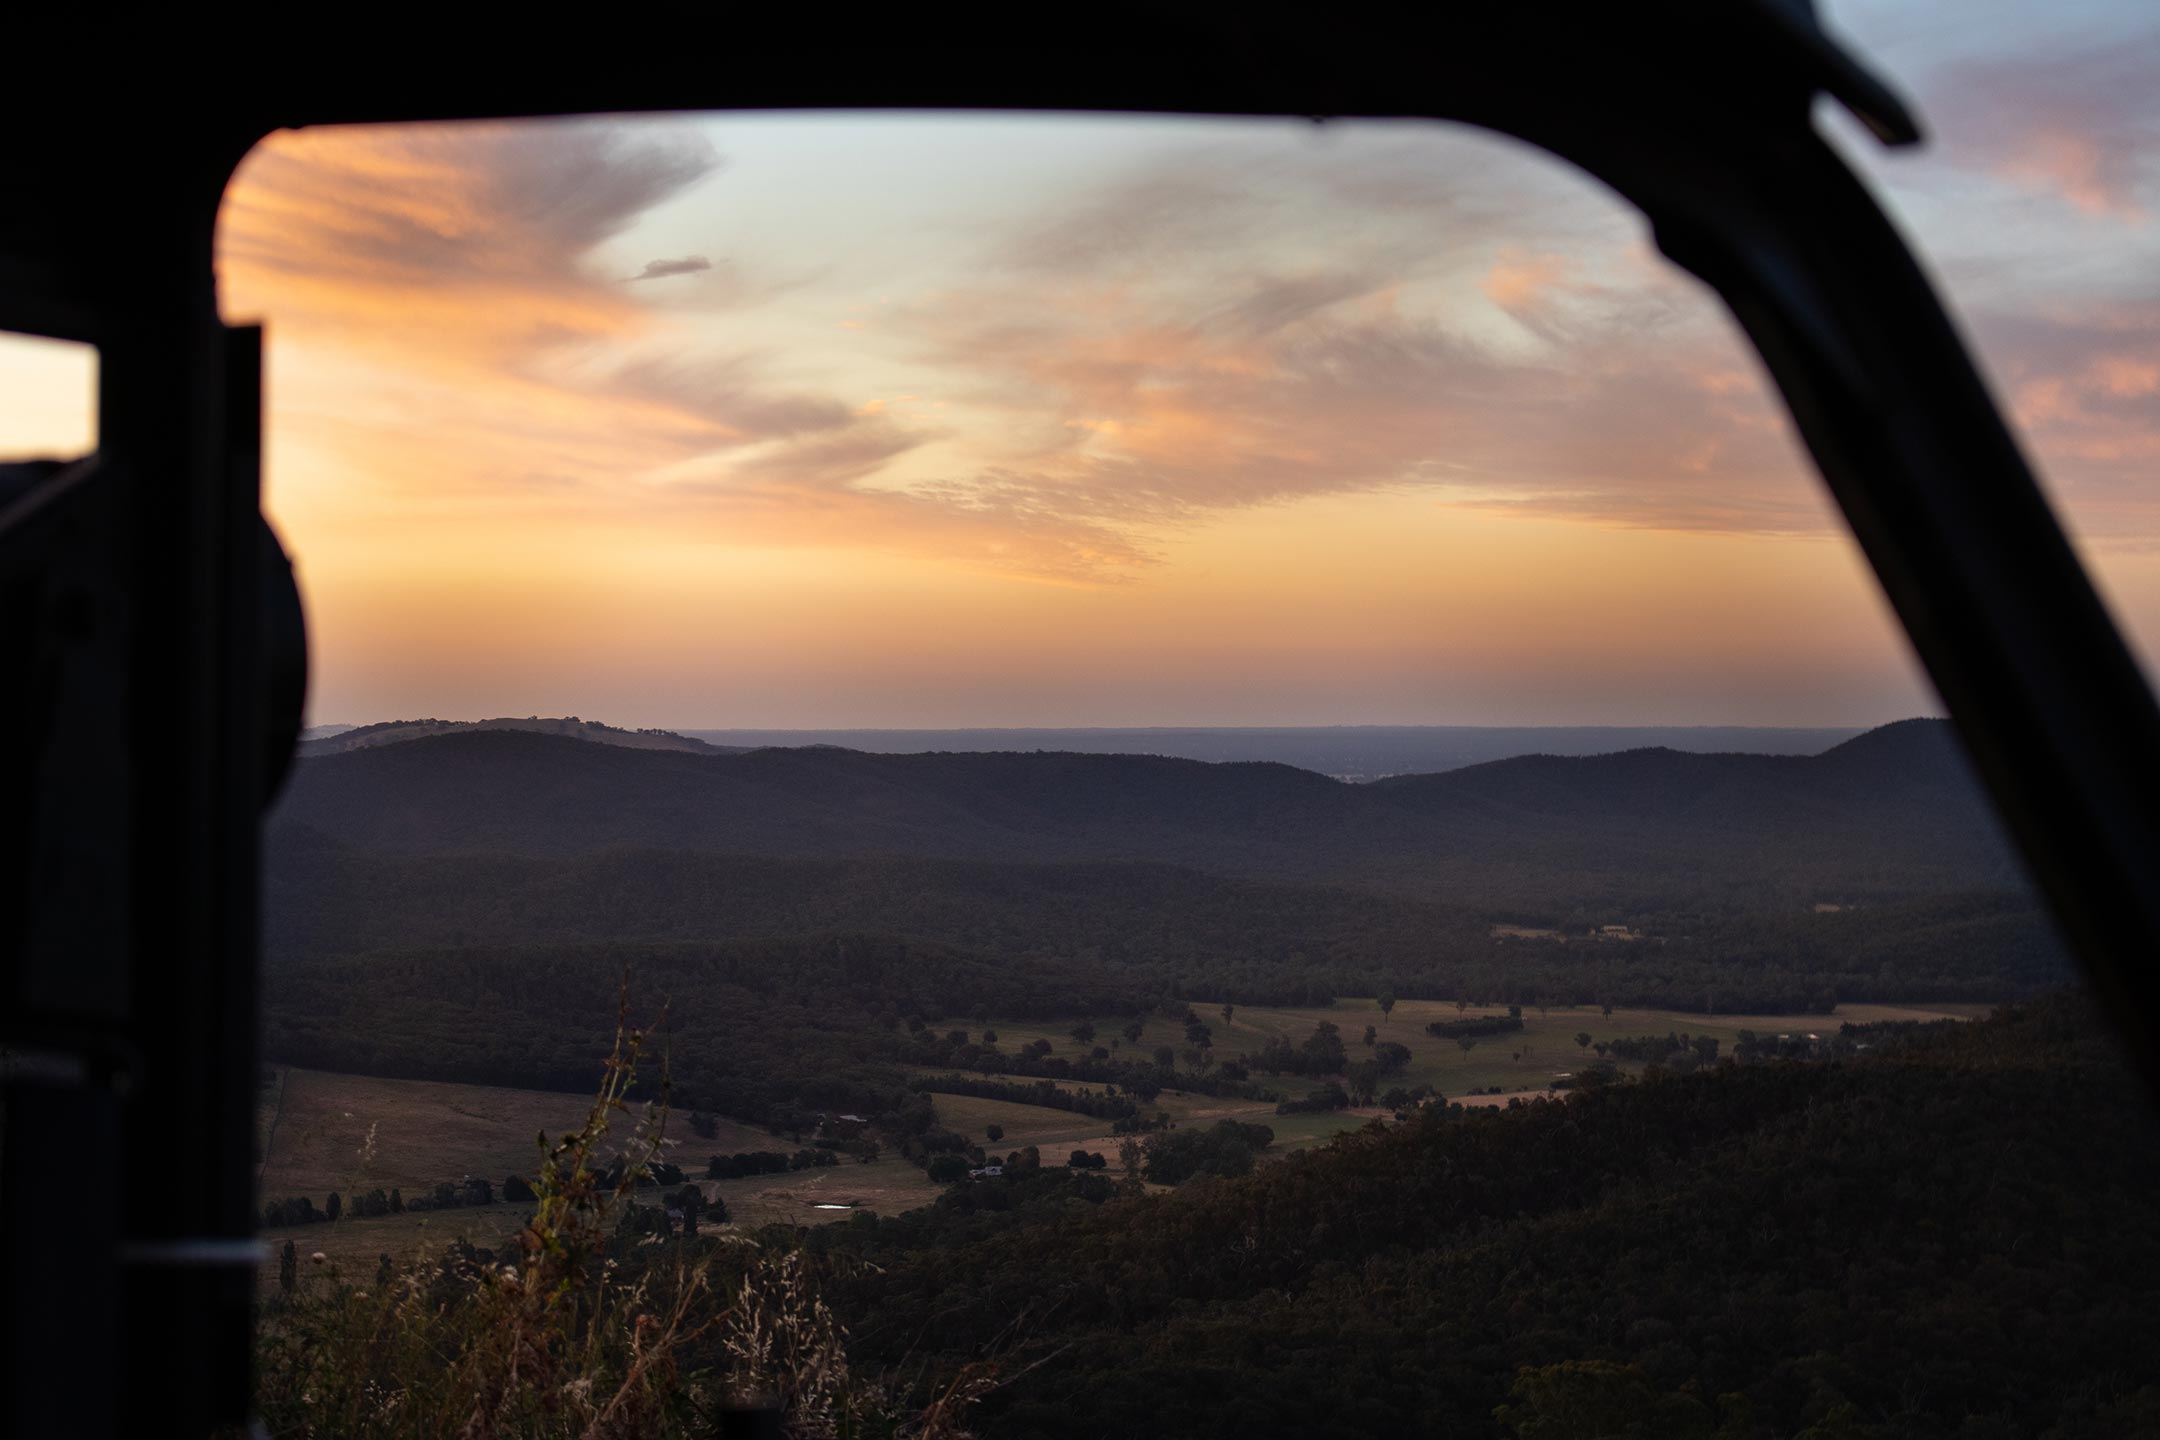 Sunset through the window of a buggy at elevation652.